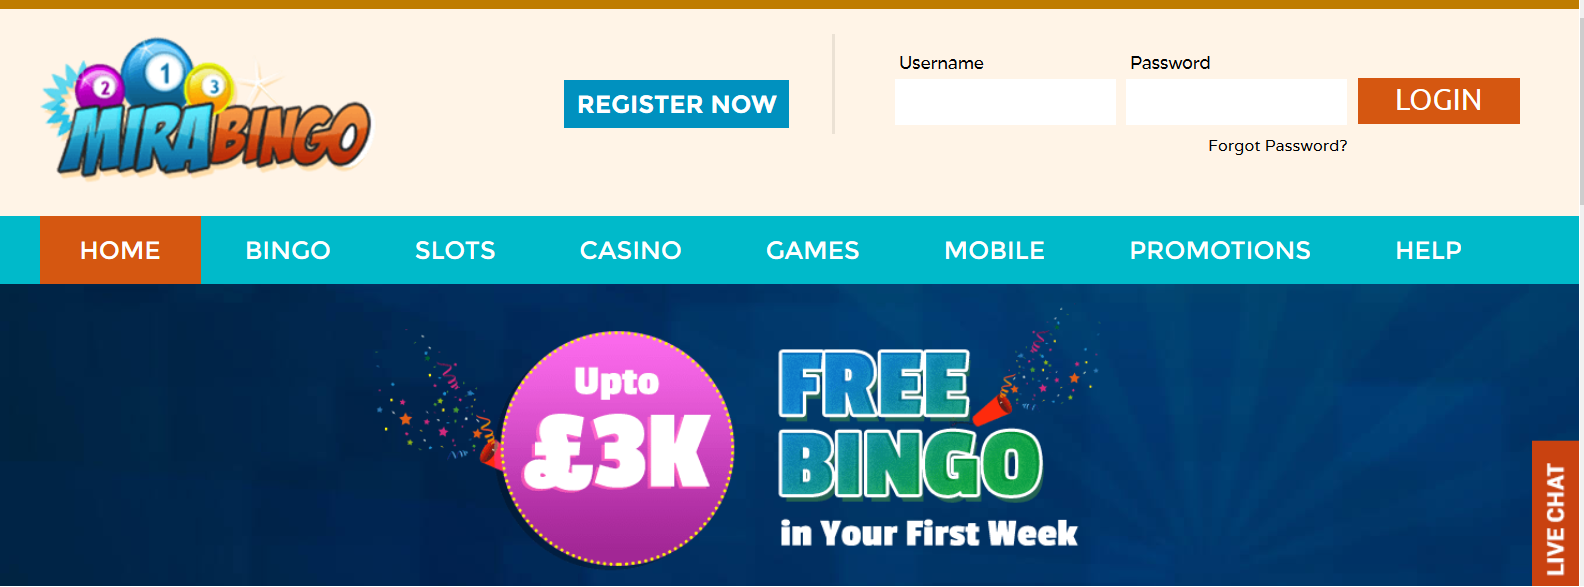 UK Bingo and Casino Games - Mira Bingo